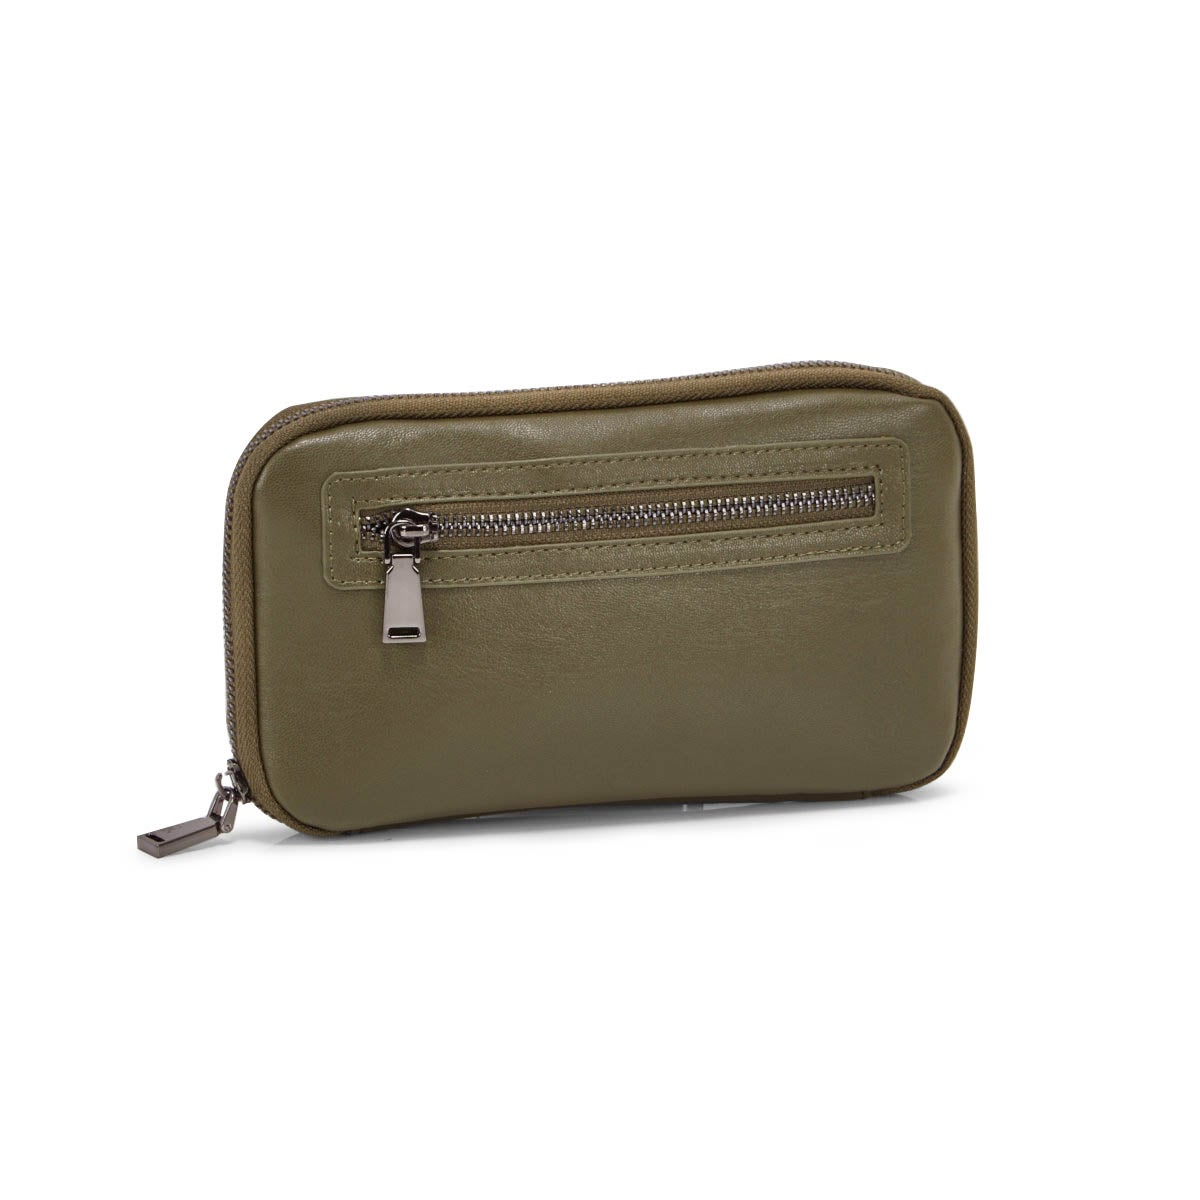 Lds Nappa World olive wallet